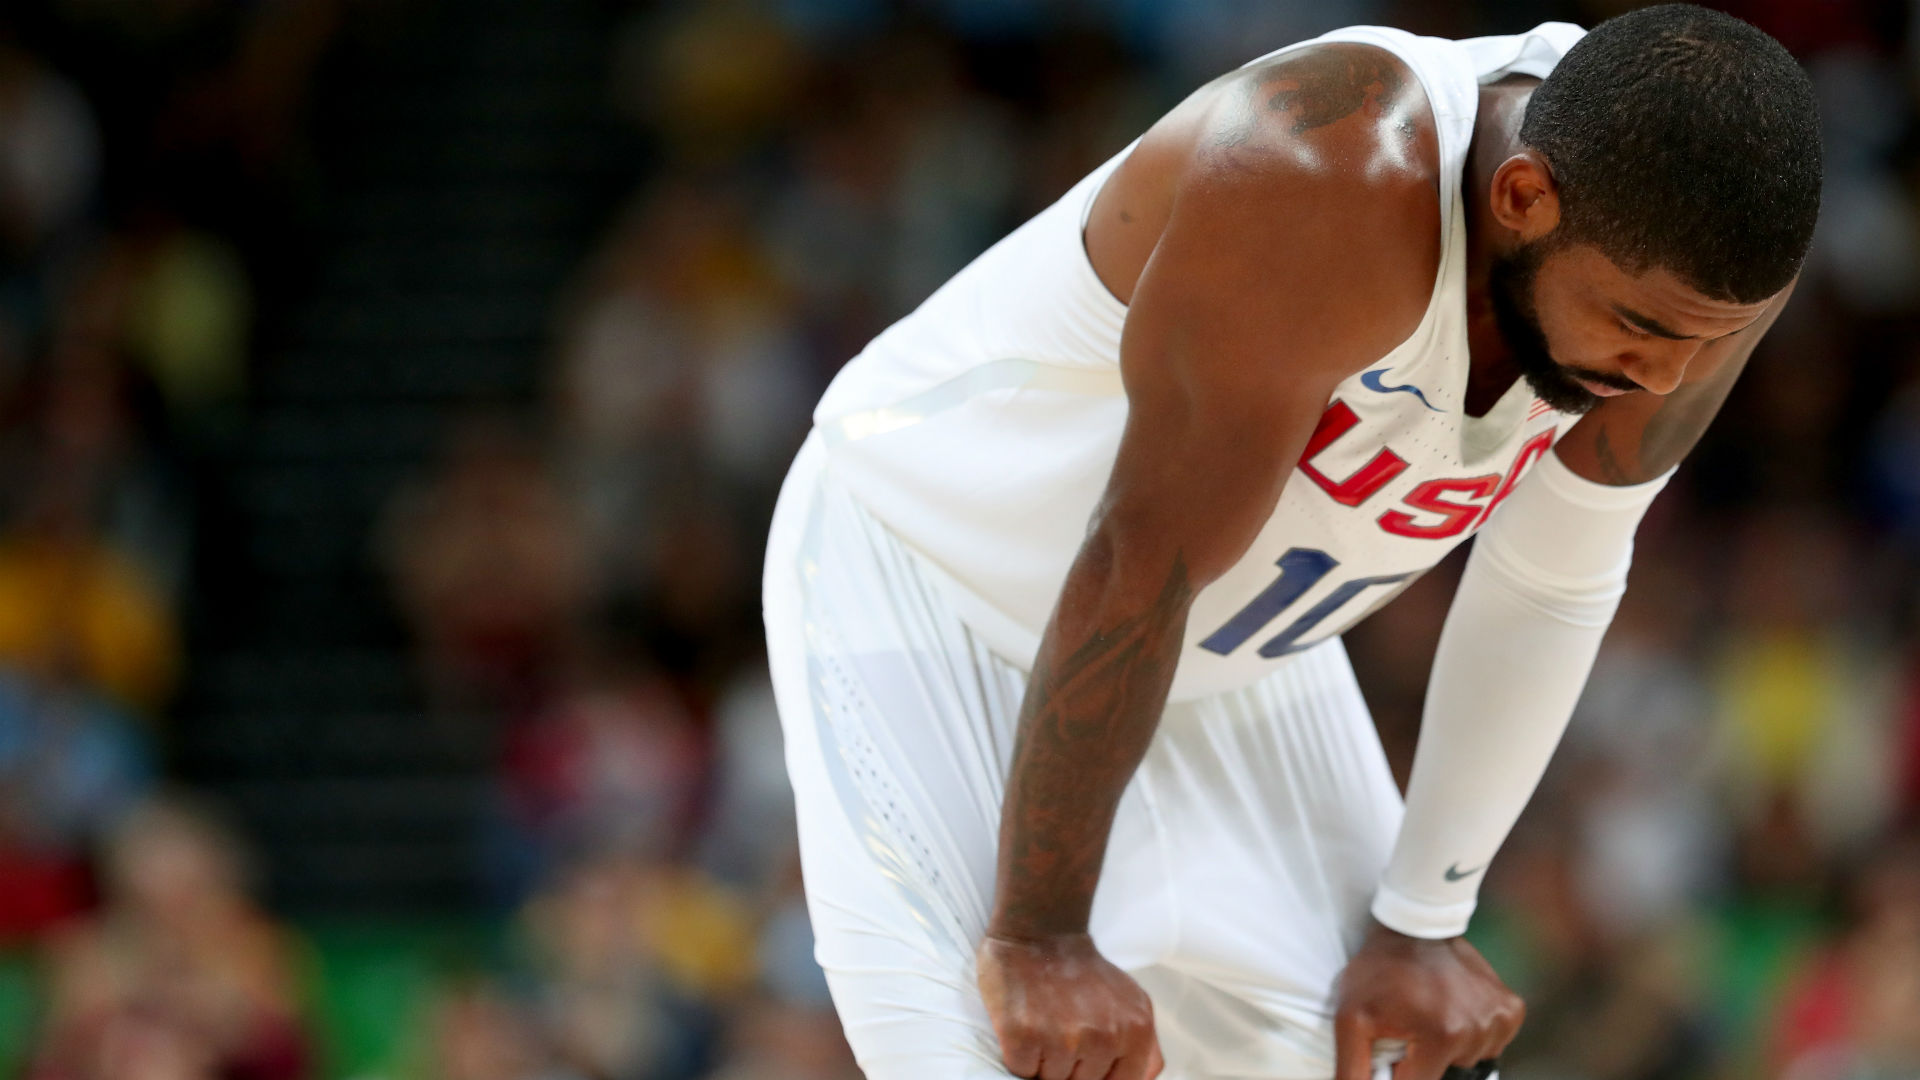 Olympics: Is the United States of America basketball team in trouble?